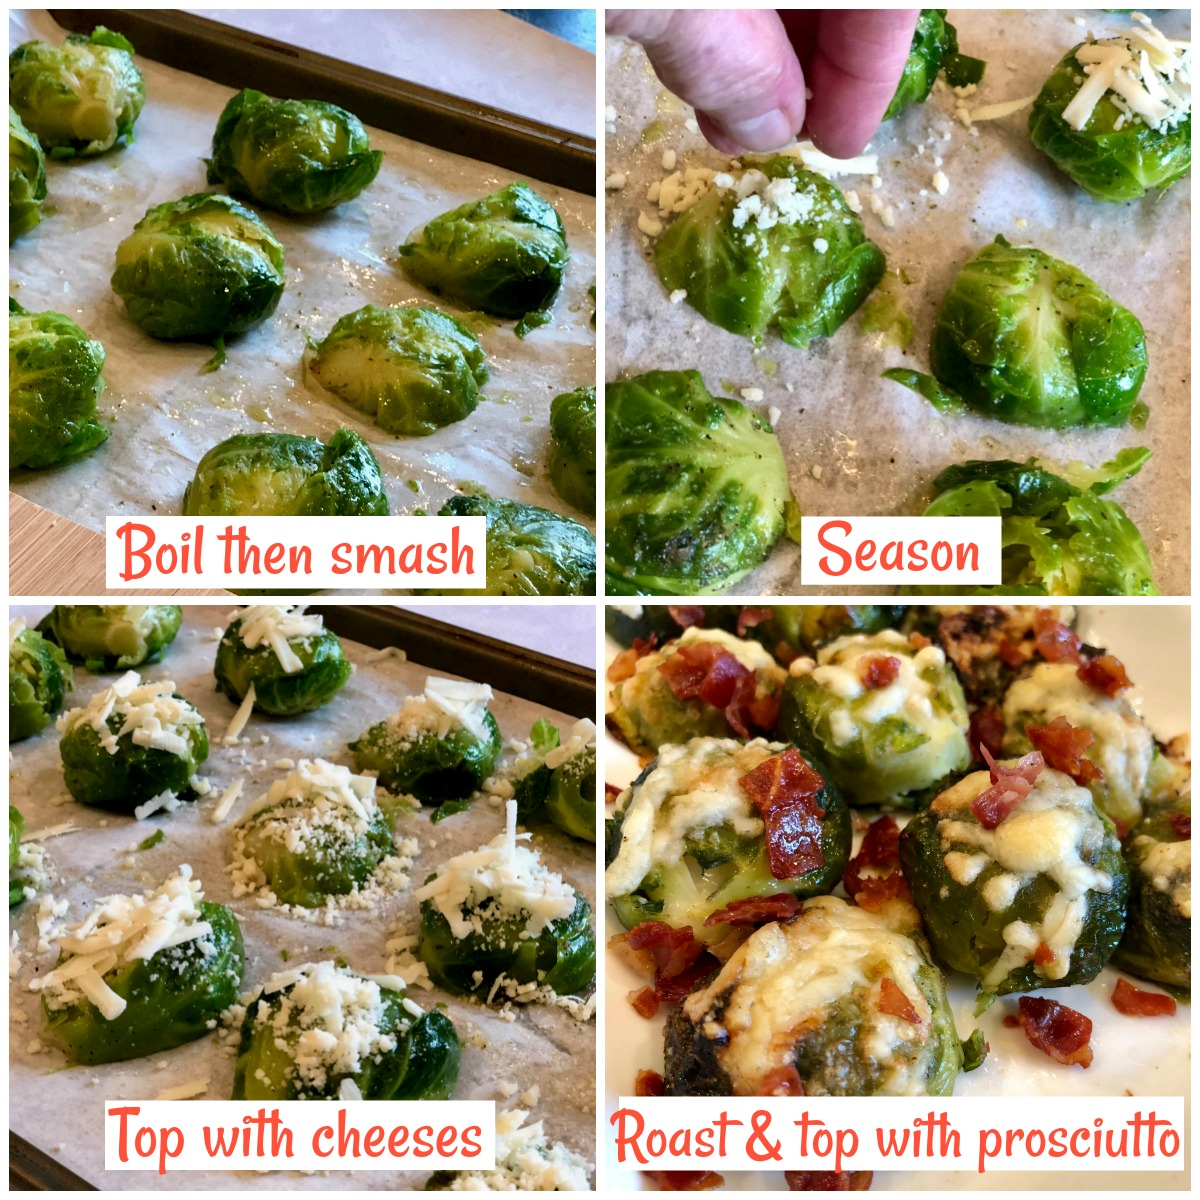 step by step photos for making smashed Brussels sprouts